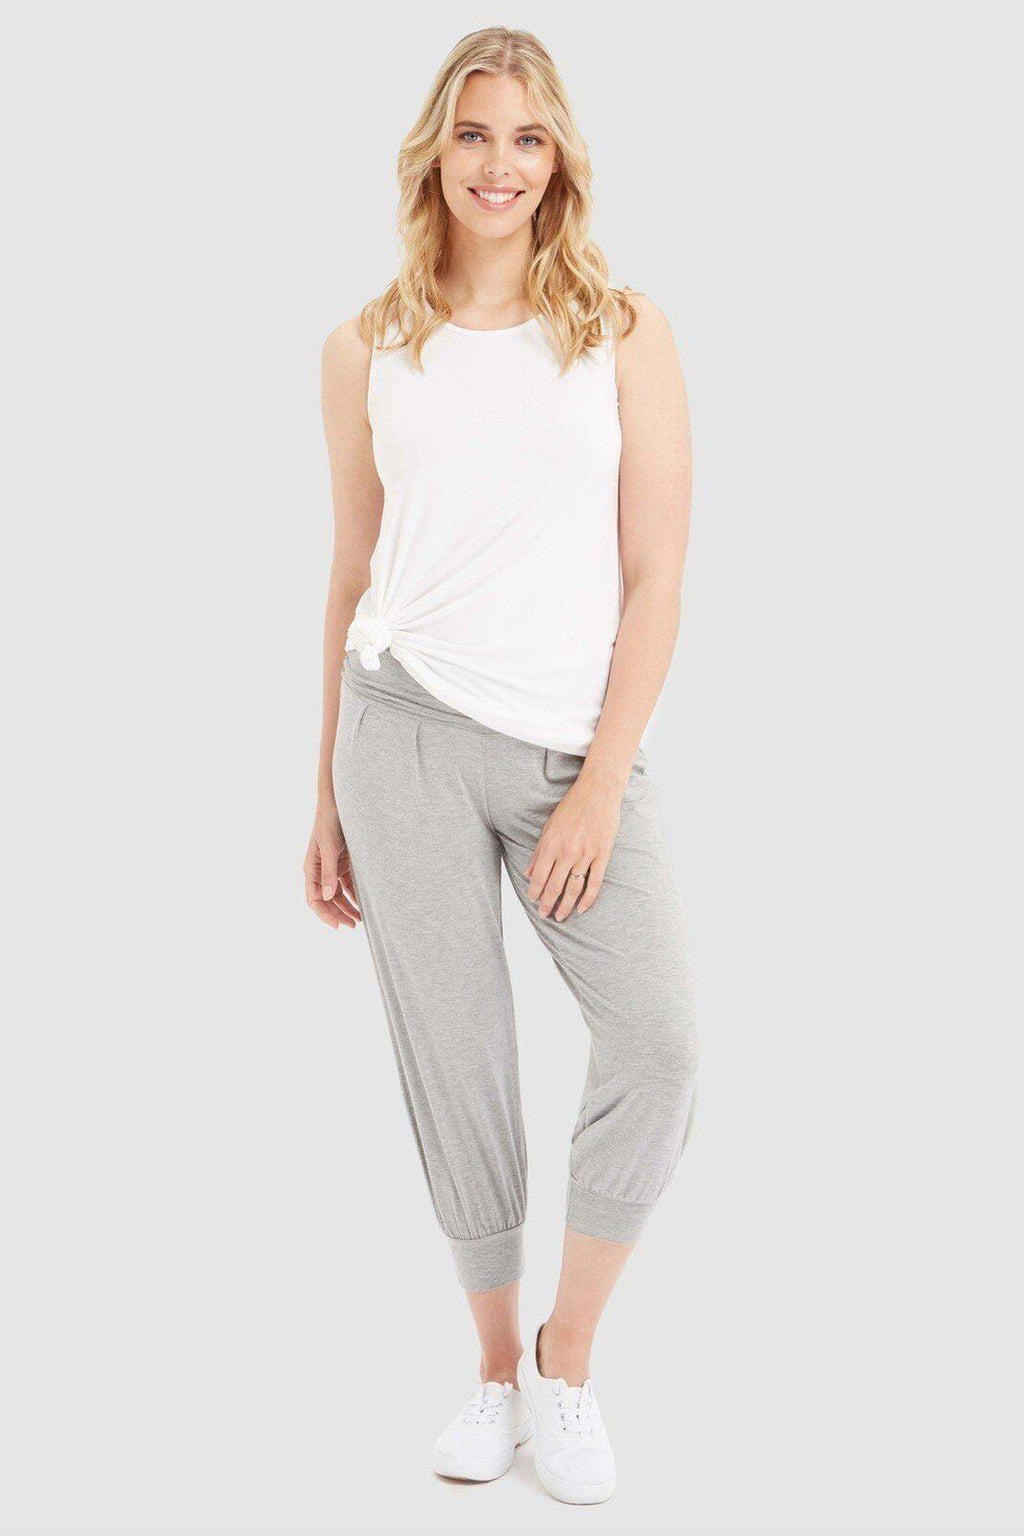 Summer Slouch Pant - Grey Marle - Bamboo Body | Buy Online at Weekends